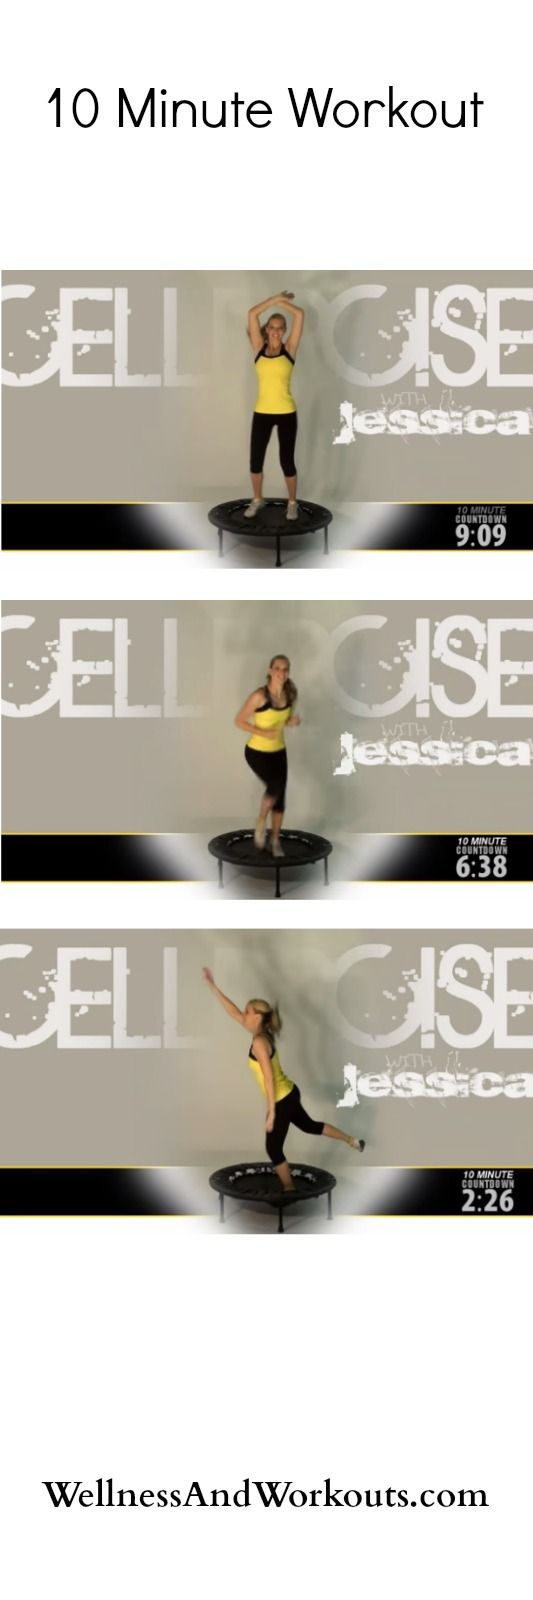 Feeling tired? Rev up your day with this quick, 10 minute workout! Rebounder workouts increase lymphatic flow, energize, and exercise every cell and muscle in your body. And that's just for starters! This workout is an excellent choice when you don't have a lot of time. If you have a rebounder and 10 minutes, you can try it now, F*R*E*E, streaming. Click the pin now, to get started!